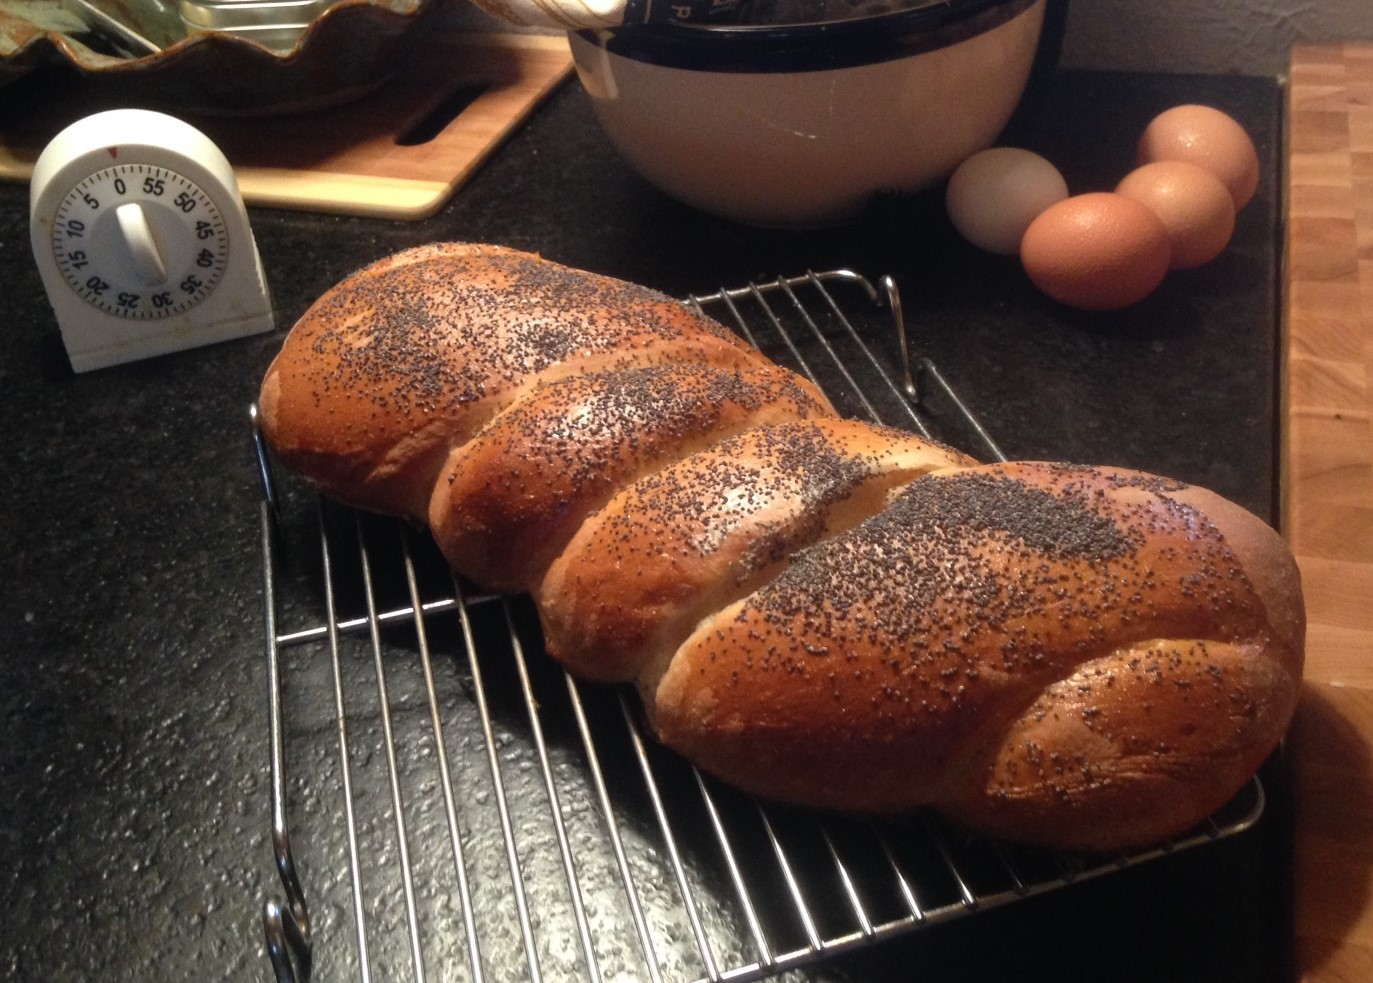 Braided Loaf with Poppy Seeds